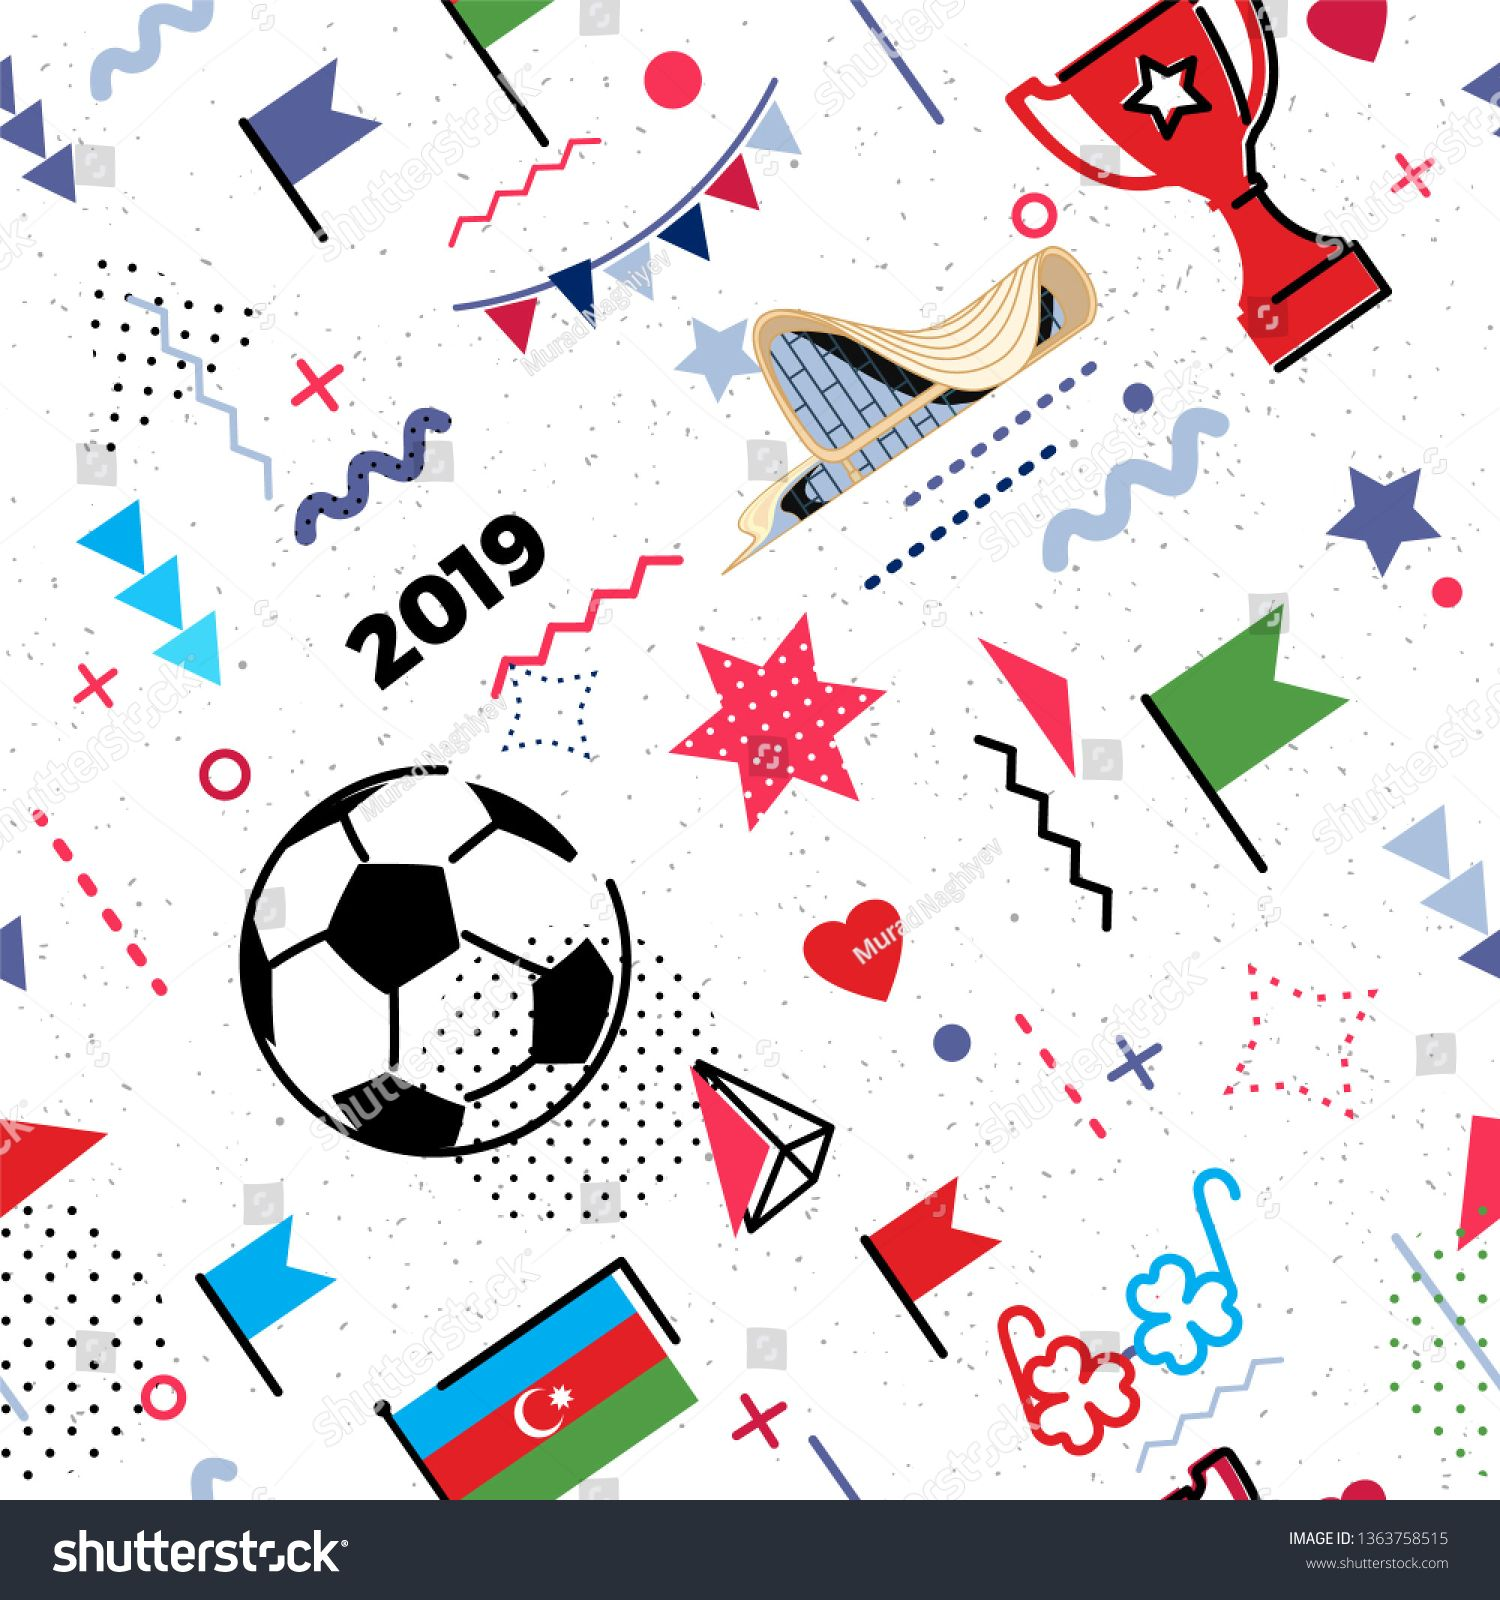 Azerbaijan Flag Baku Soccer Football Abstract Background In 80s Memphis Style Seamless Memphis Pattern For In 2020 Abstract Backgrounds Free Illustrations Free Icons